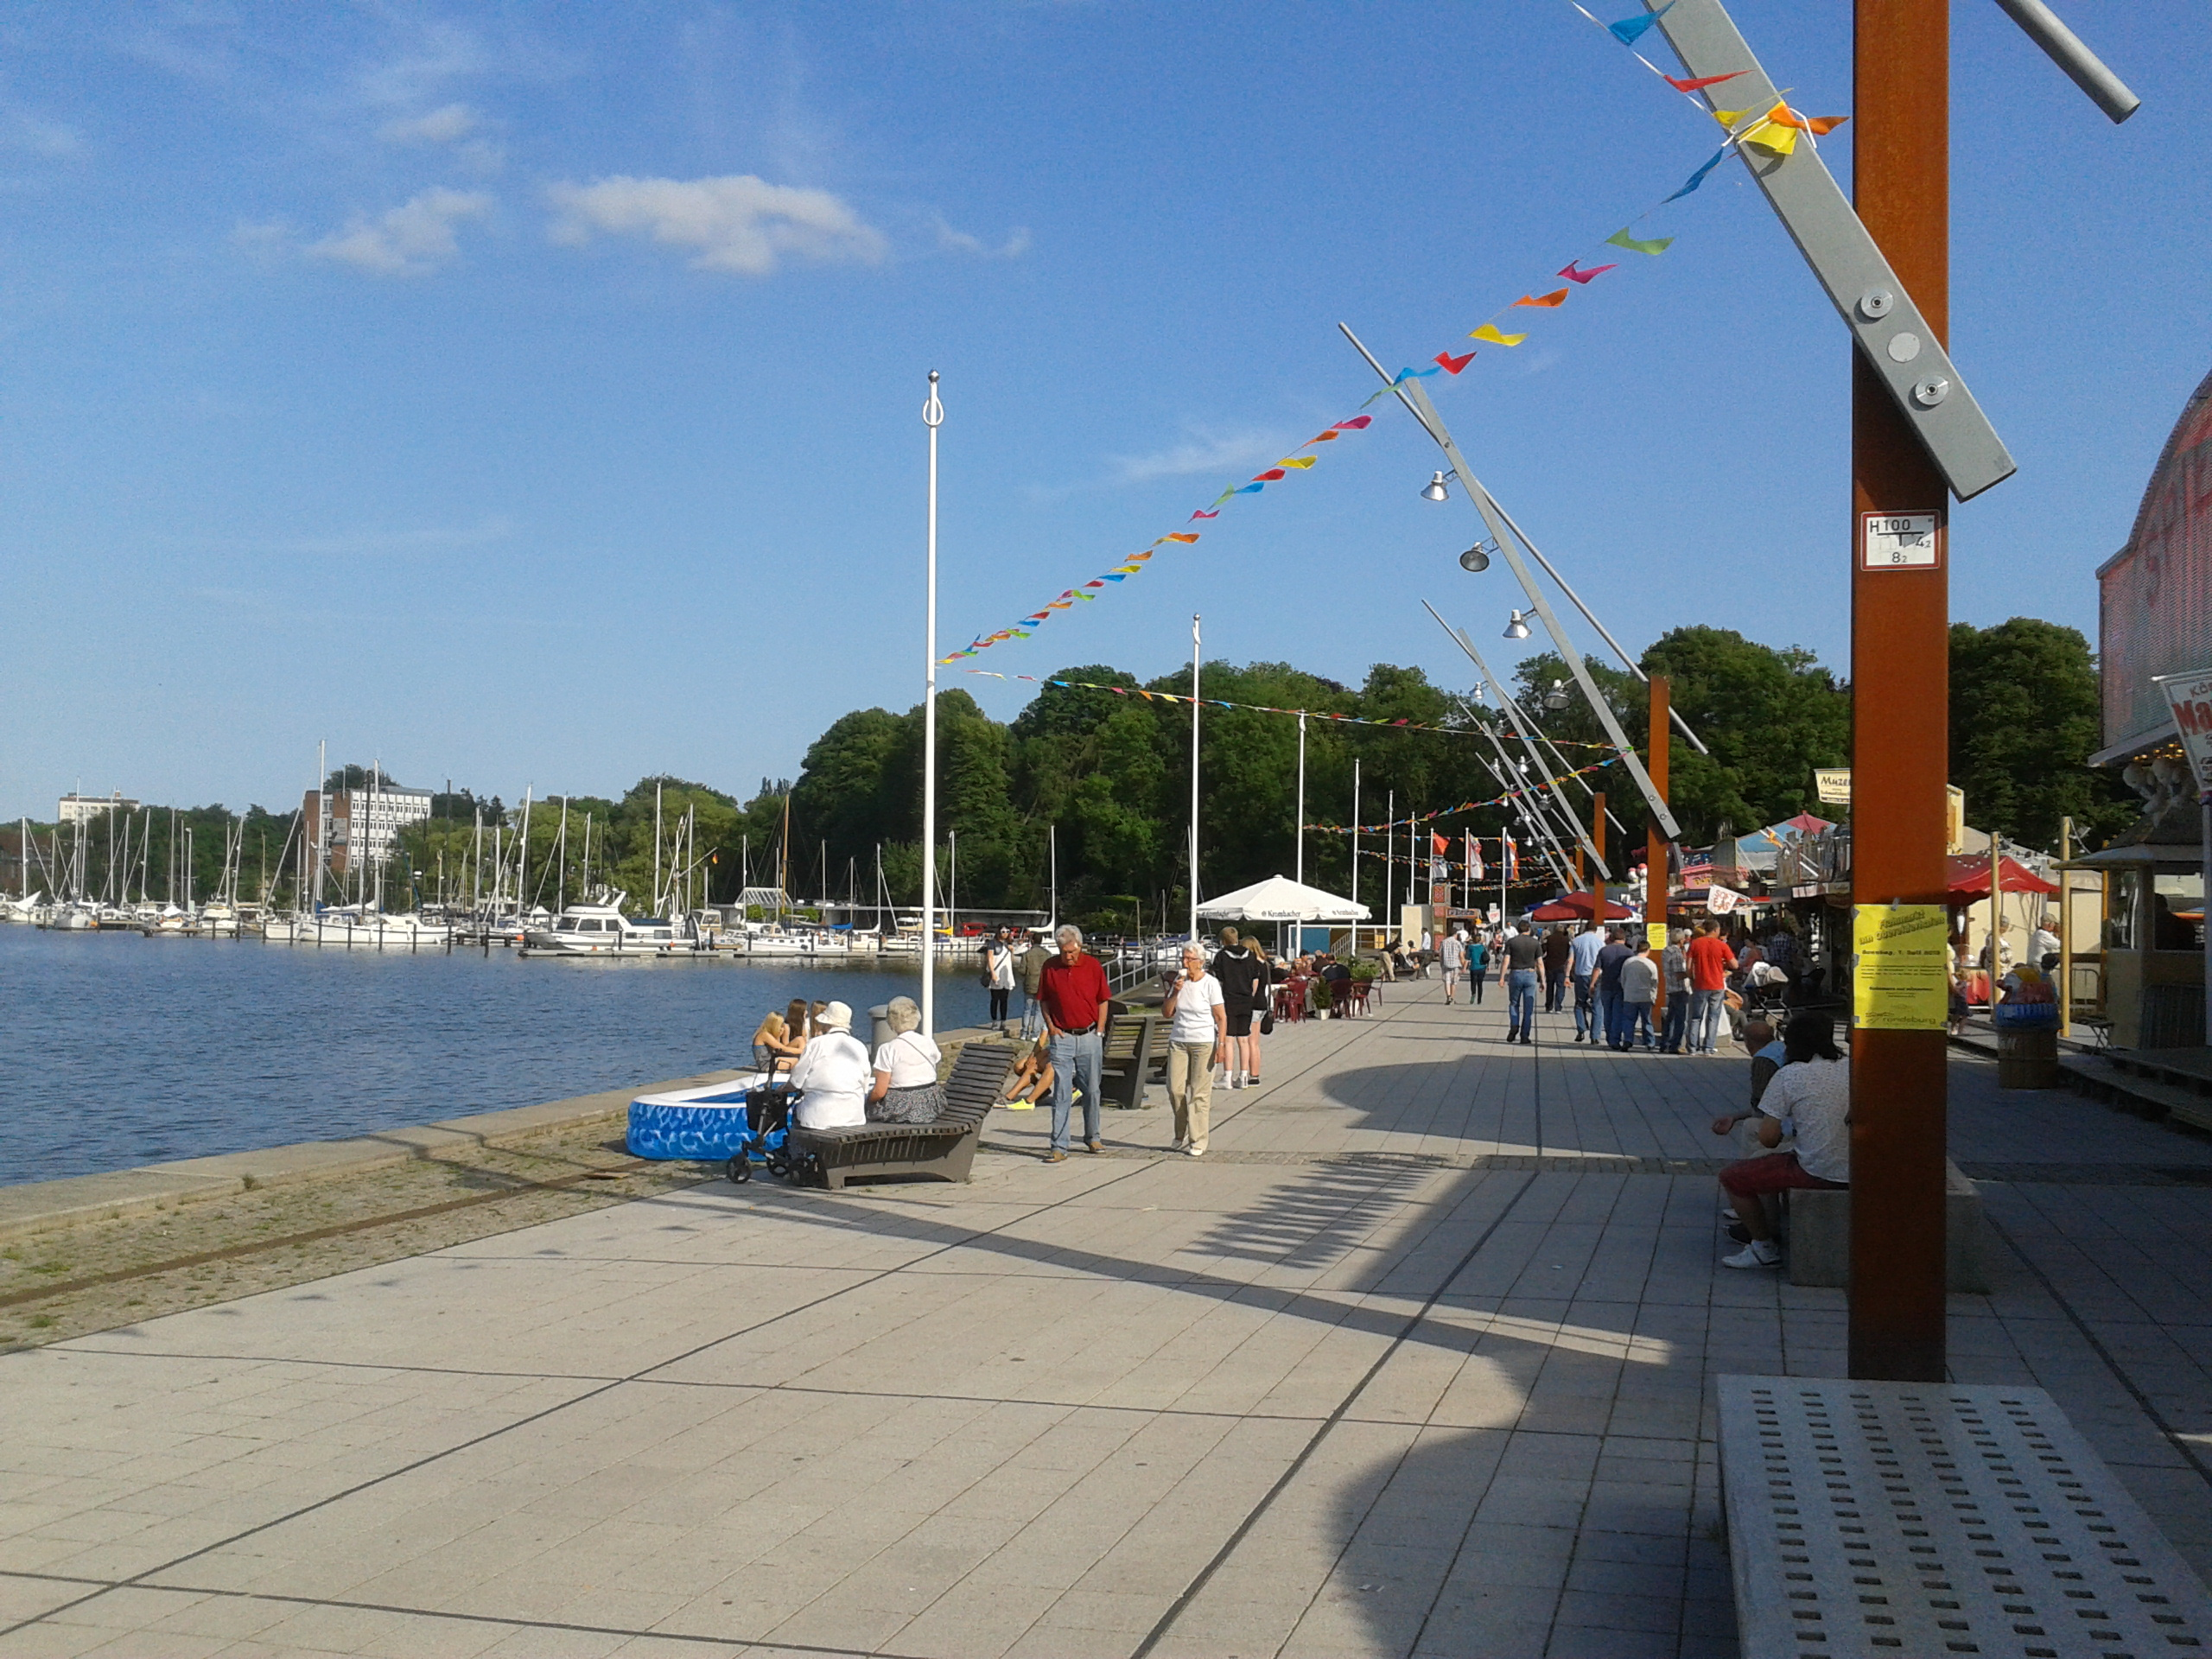 Summer weather at Rendsburg